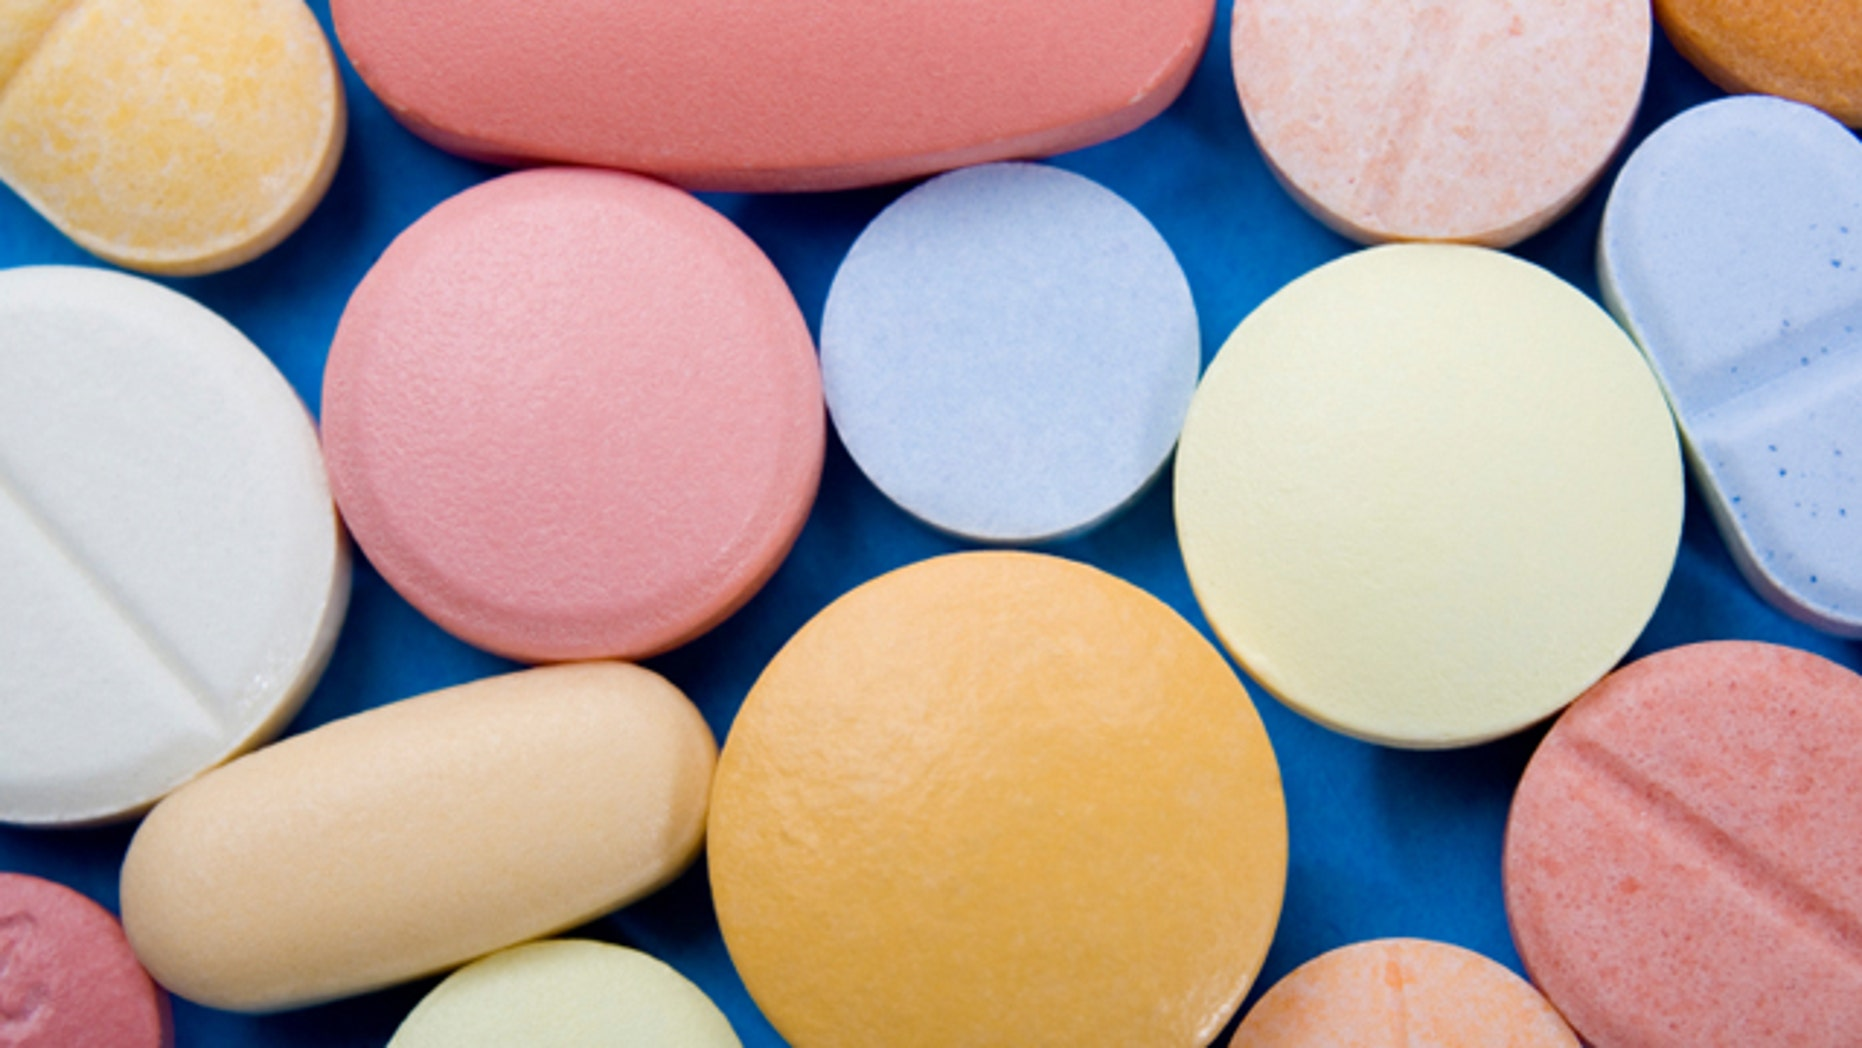 Can diet pills interact with birth control